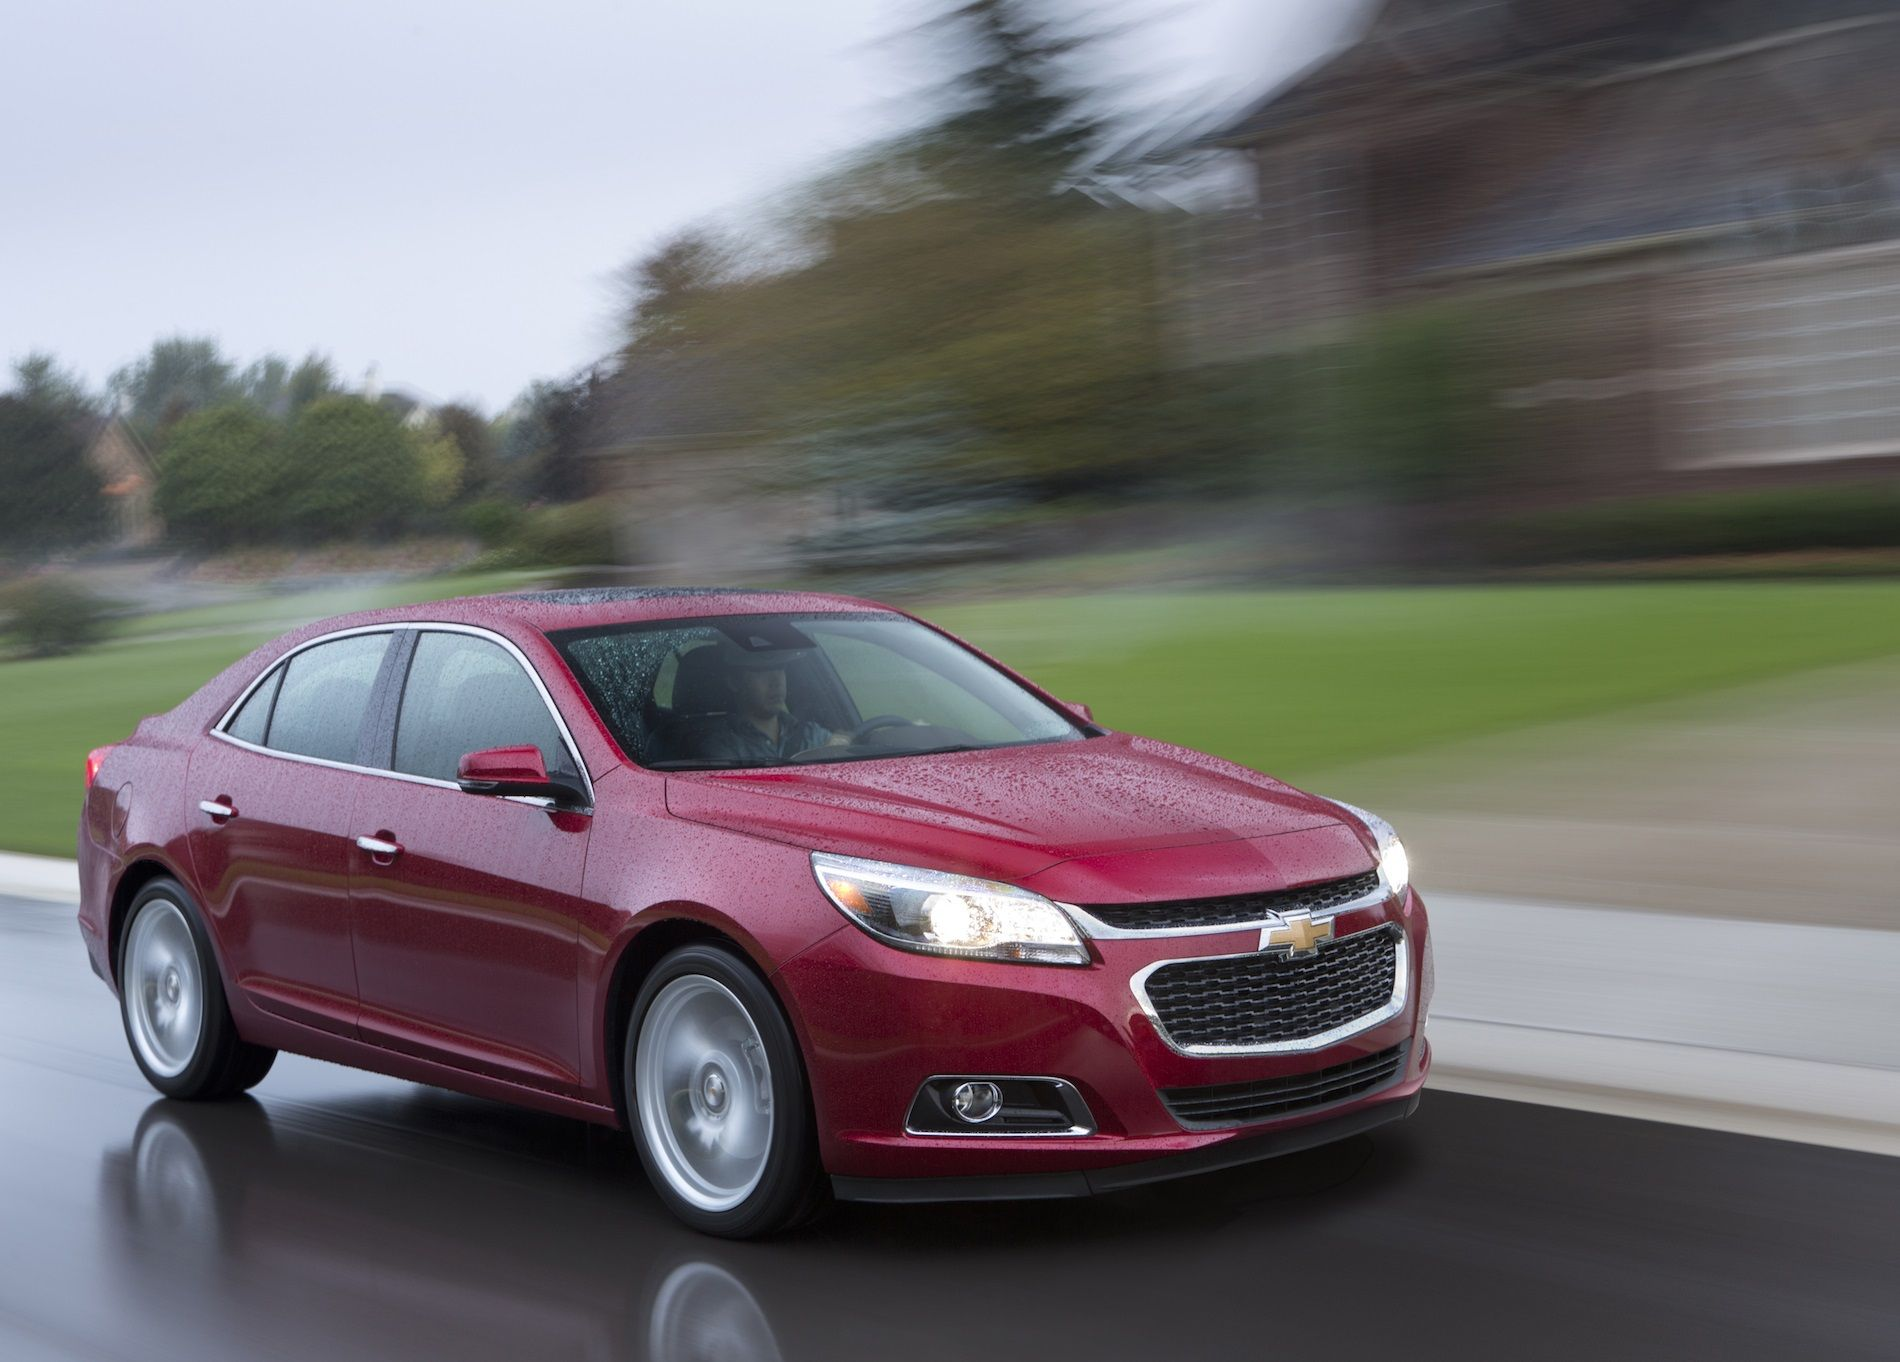 Chevy Malibu Mid Size Cars For Sale Today You Can Get Great Prices